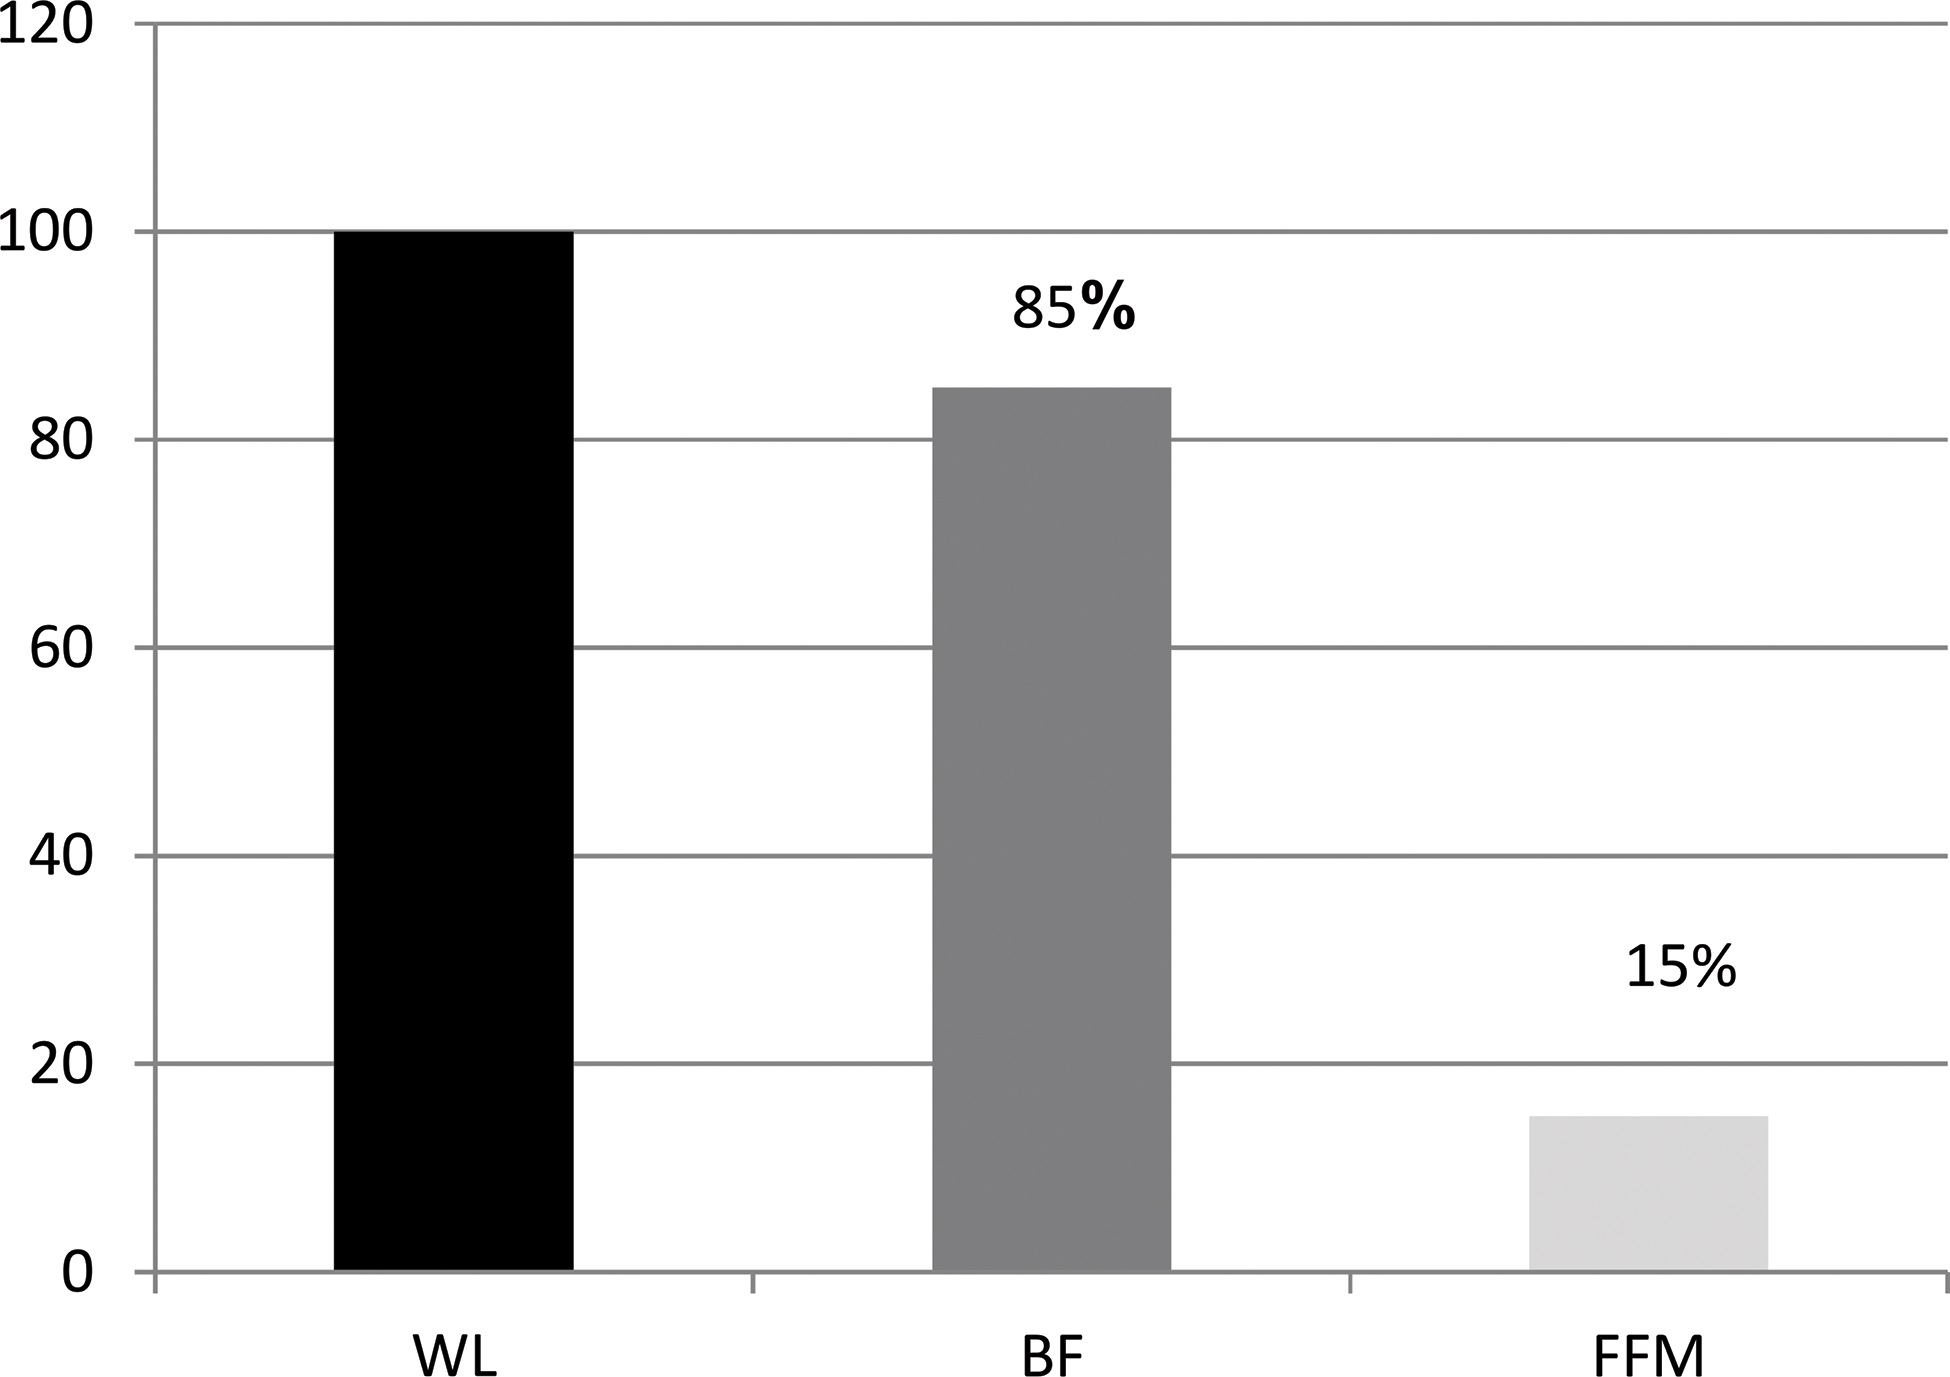 Changes in BF and FFM in relation to weight loss (%) Note: BF, body fat; FFM, fat-free mass; WW, weight Loss.